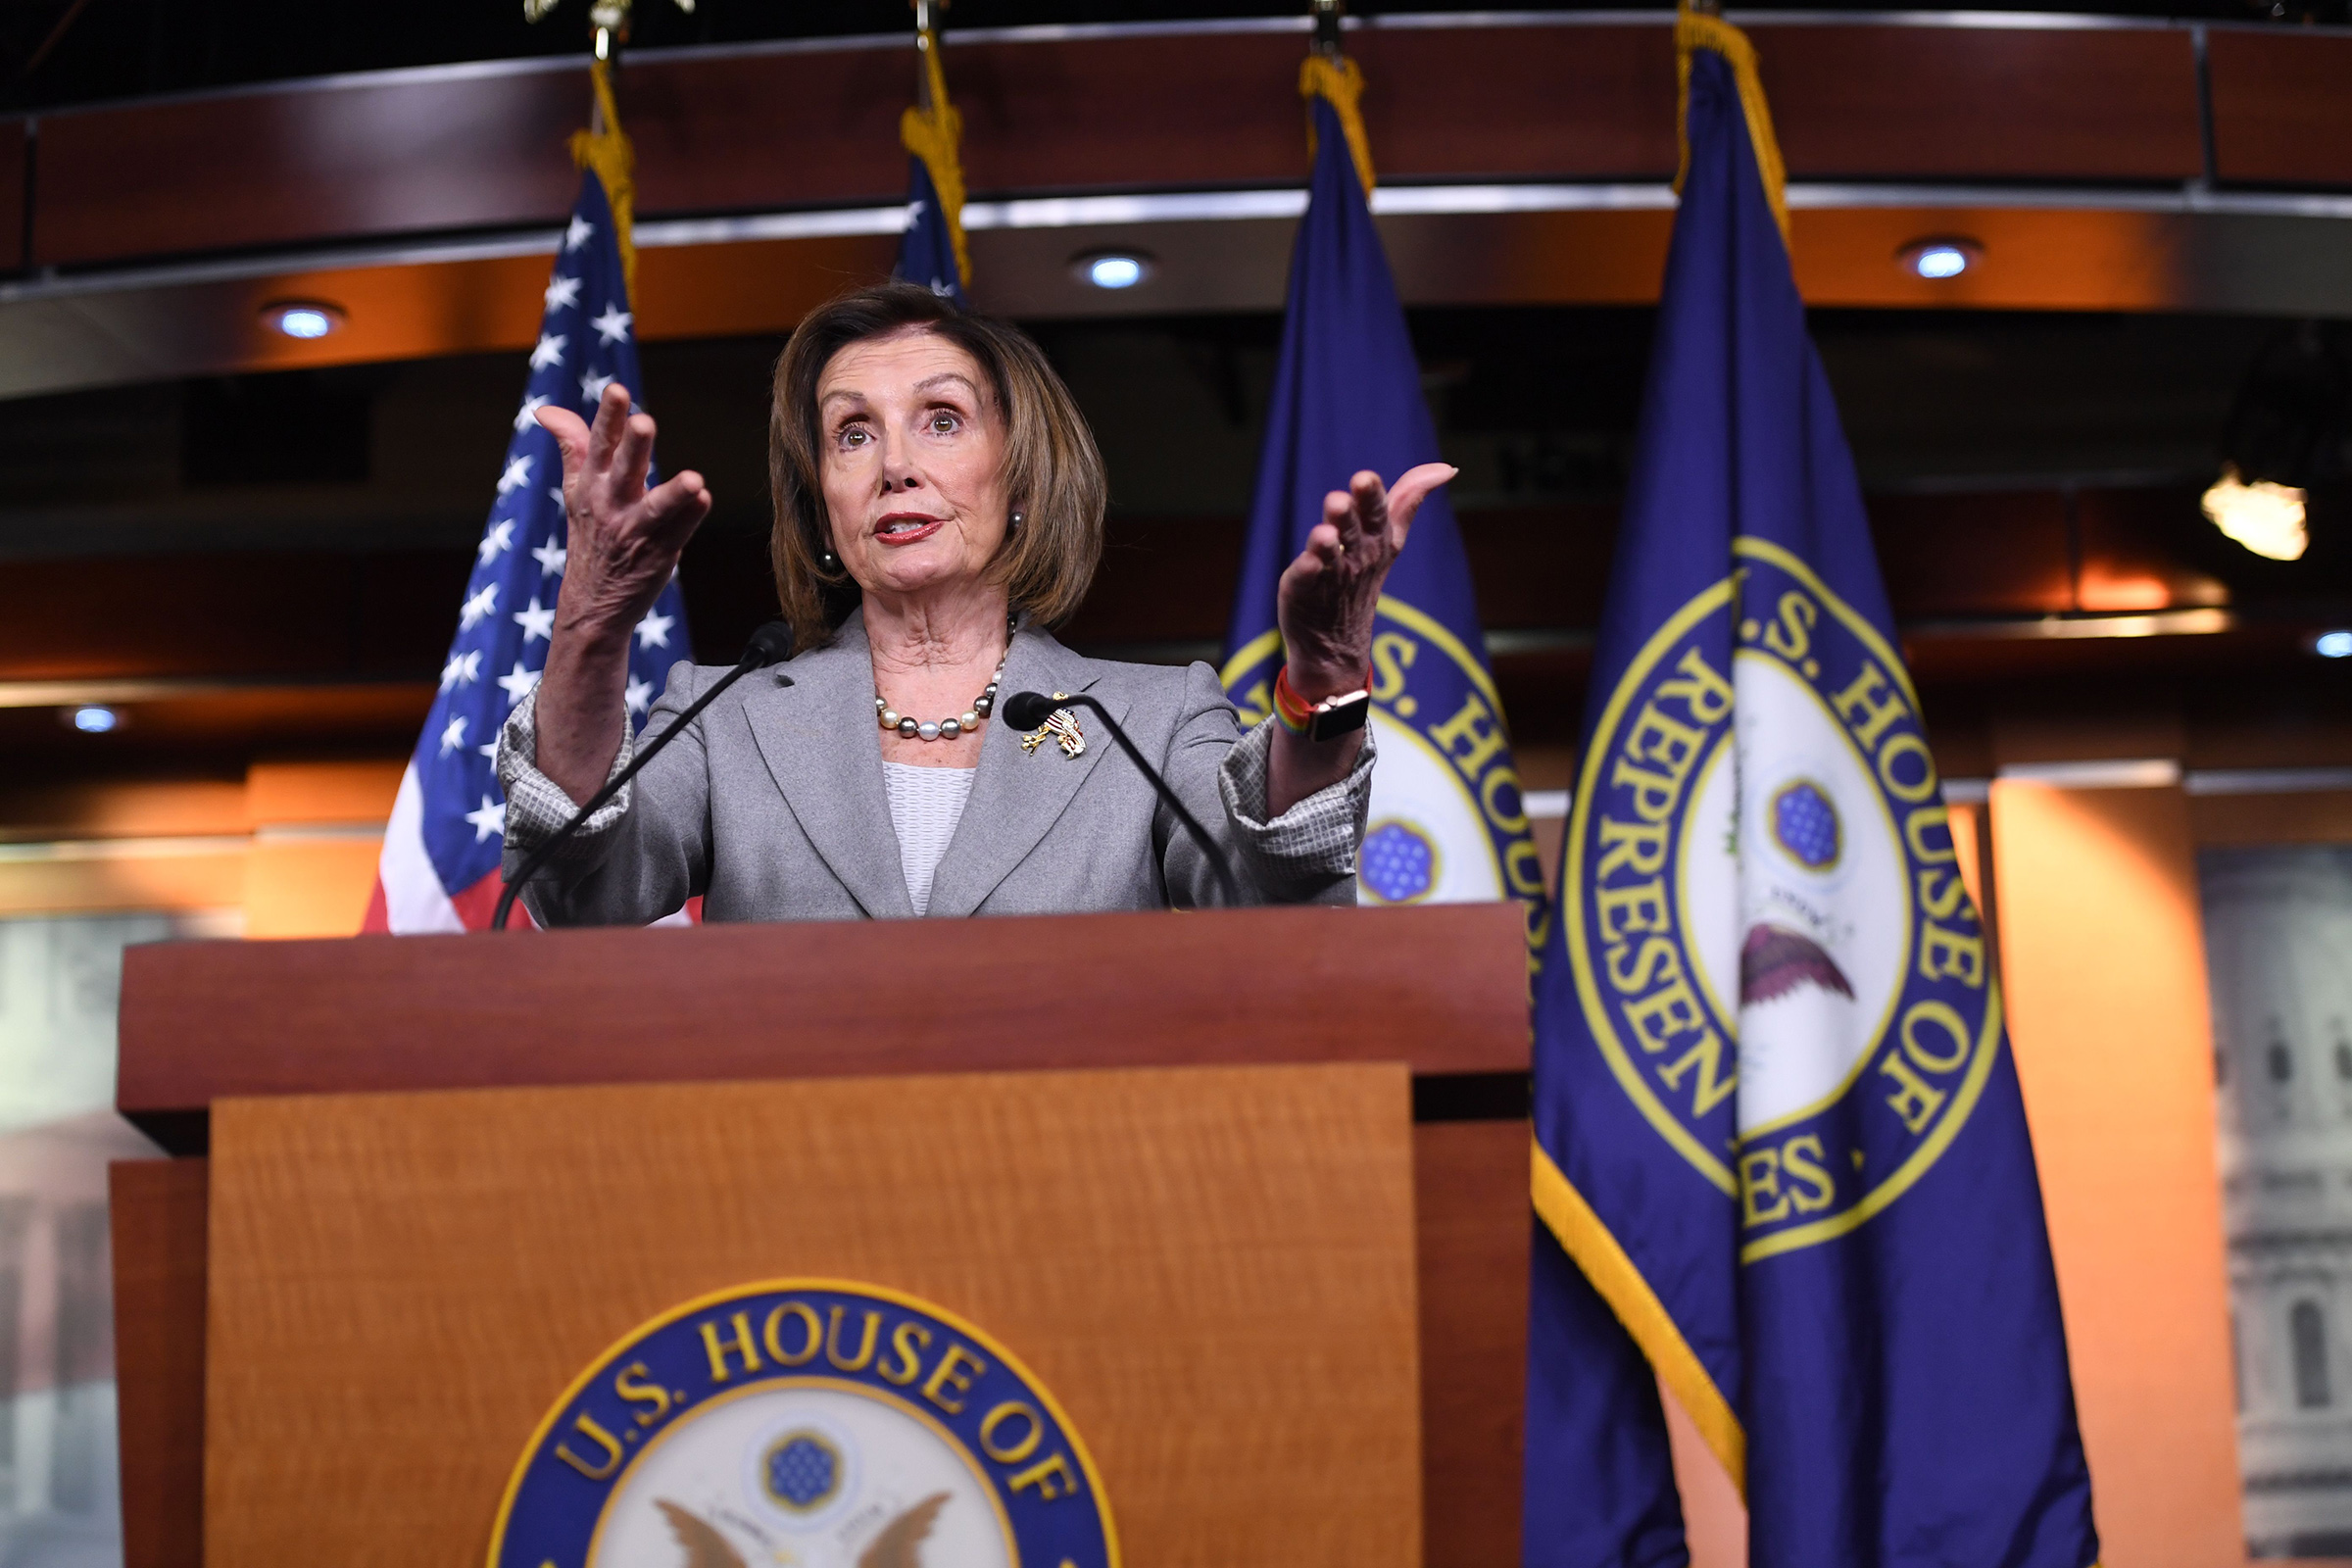 US Speaker of the House Nancy Pelosi speaks during her weekly press conference in Washington, DC on Dec. 12, 2019.